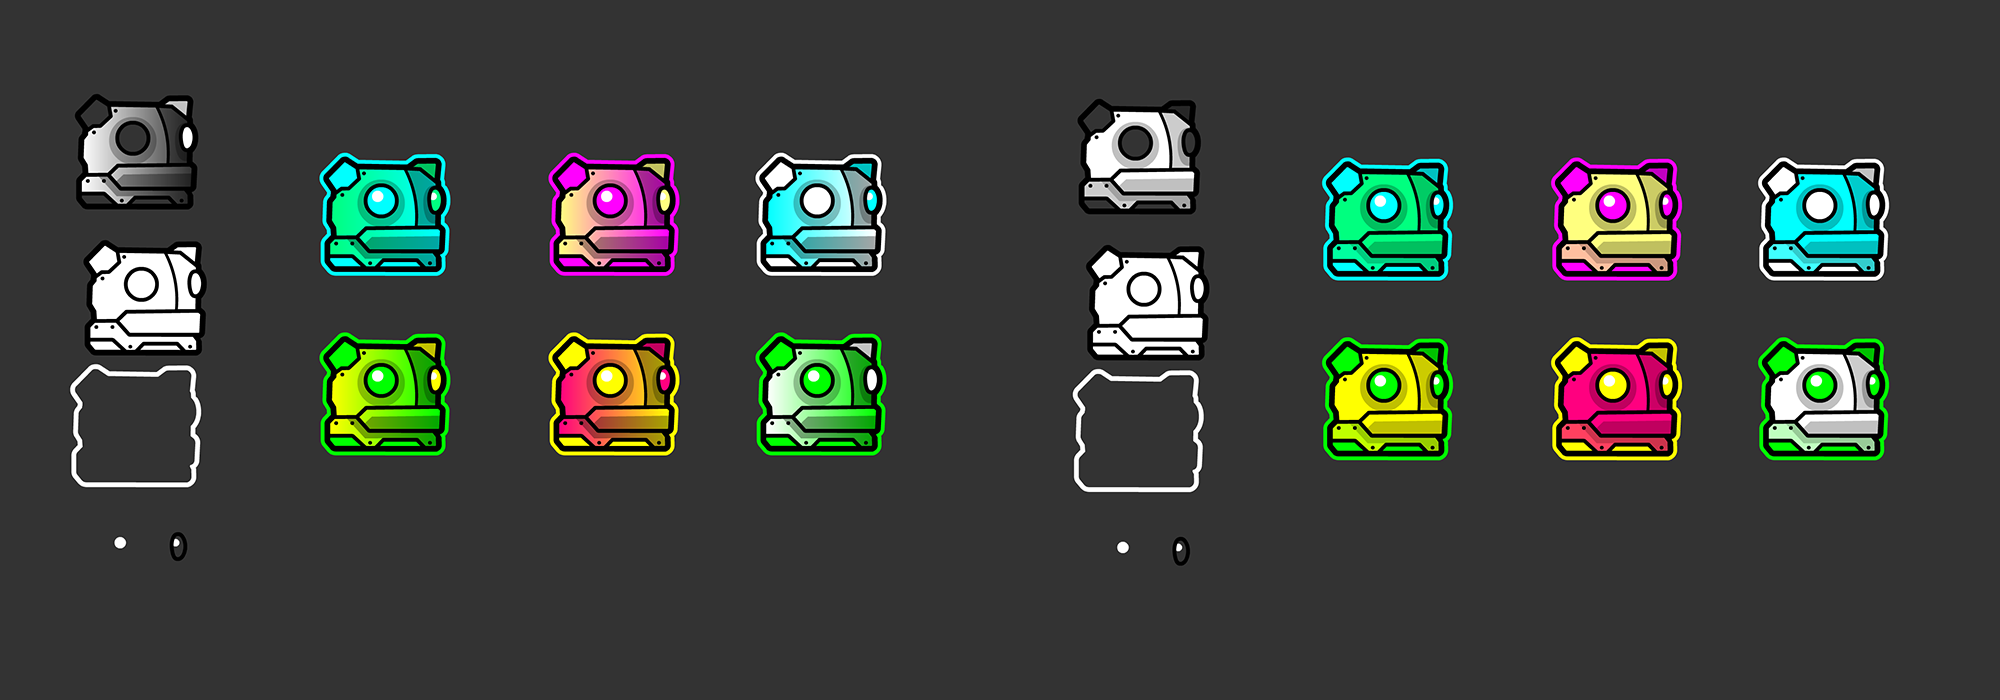 Update2.2IconPreview06.png